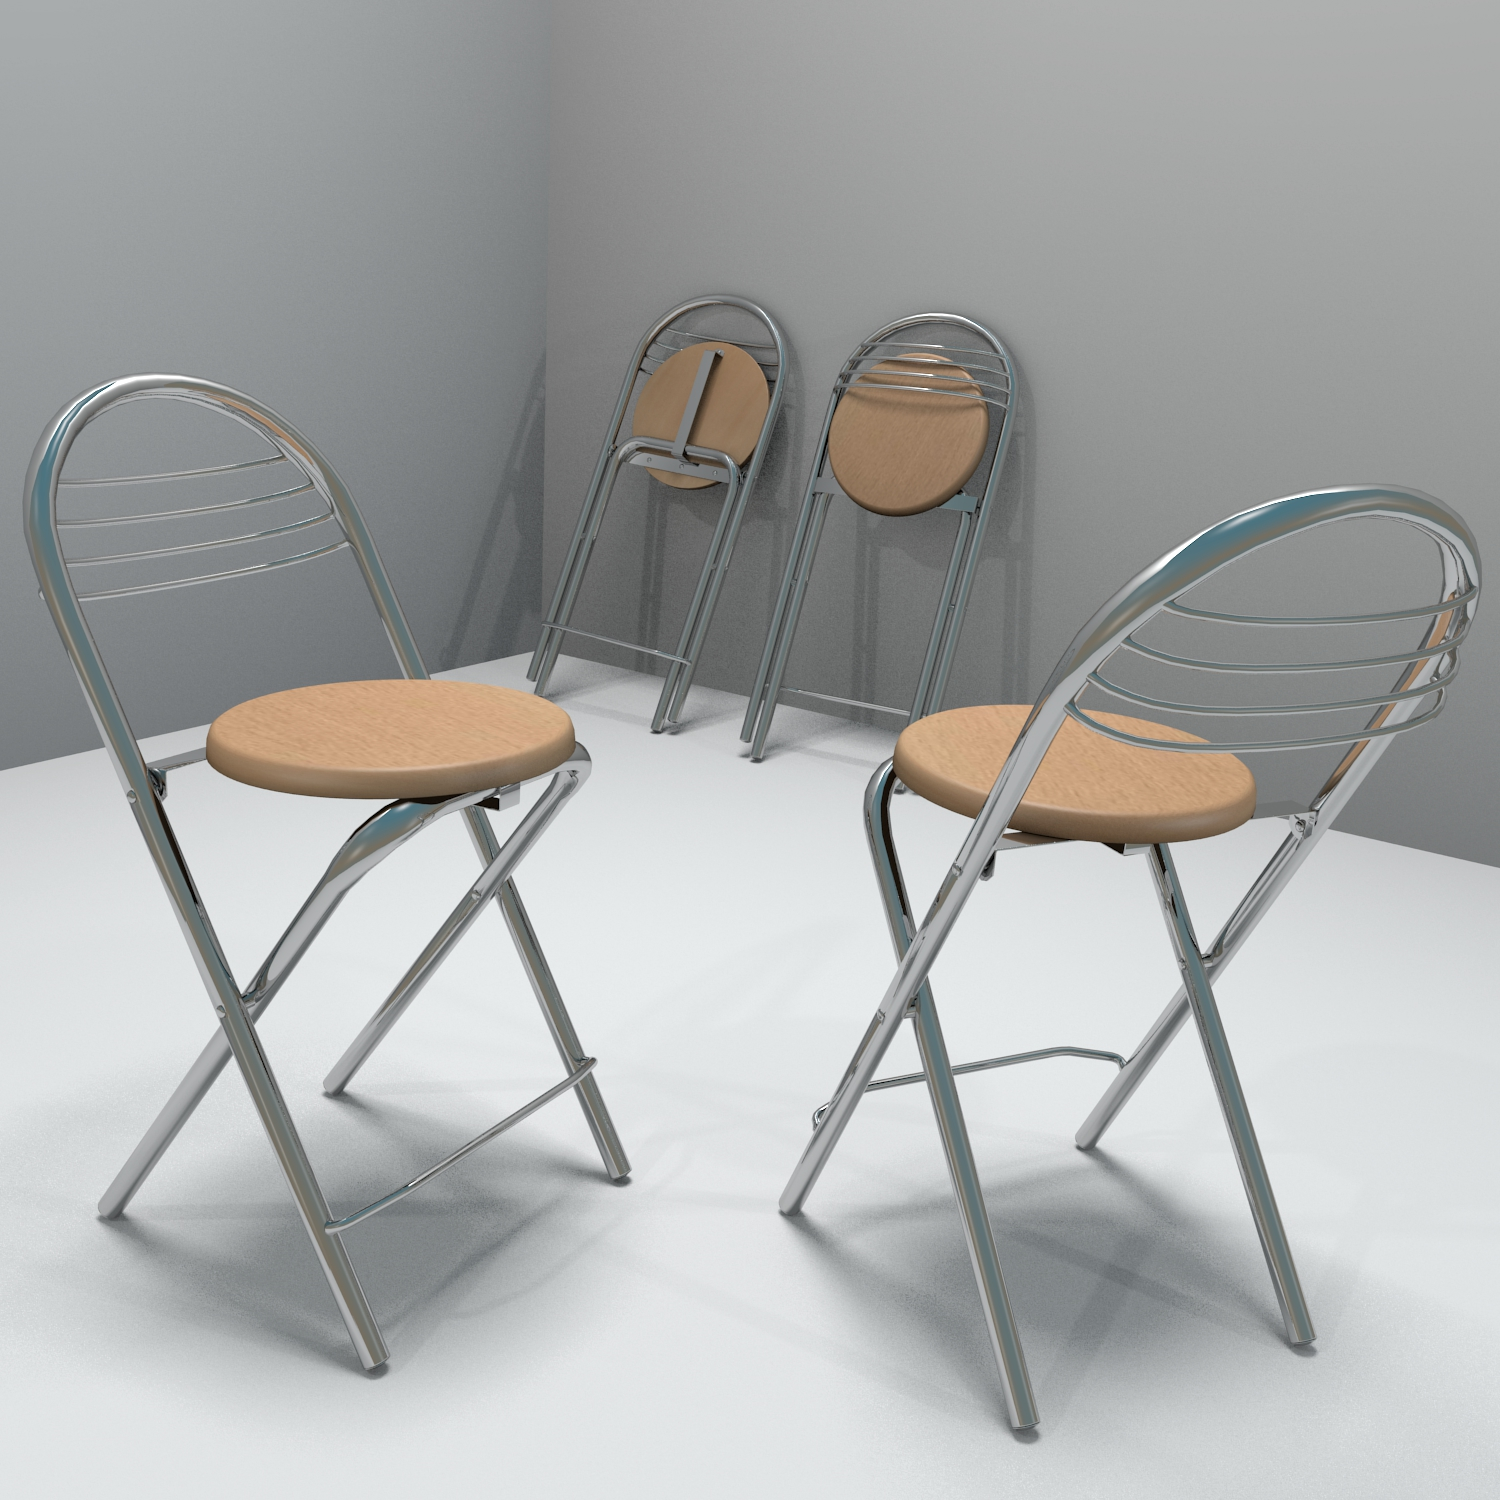 kitchen stool 3d model blend obj 140423